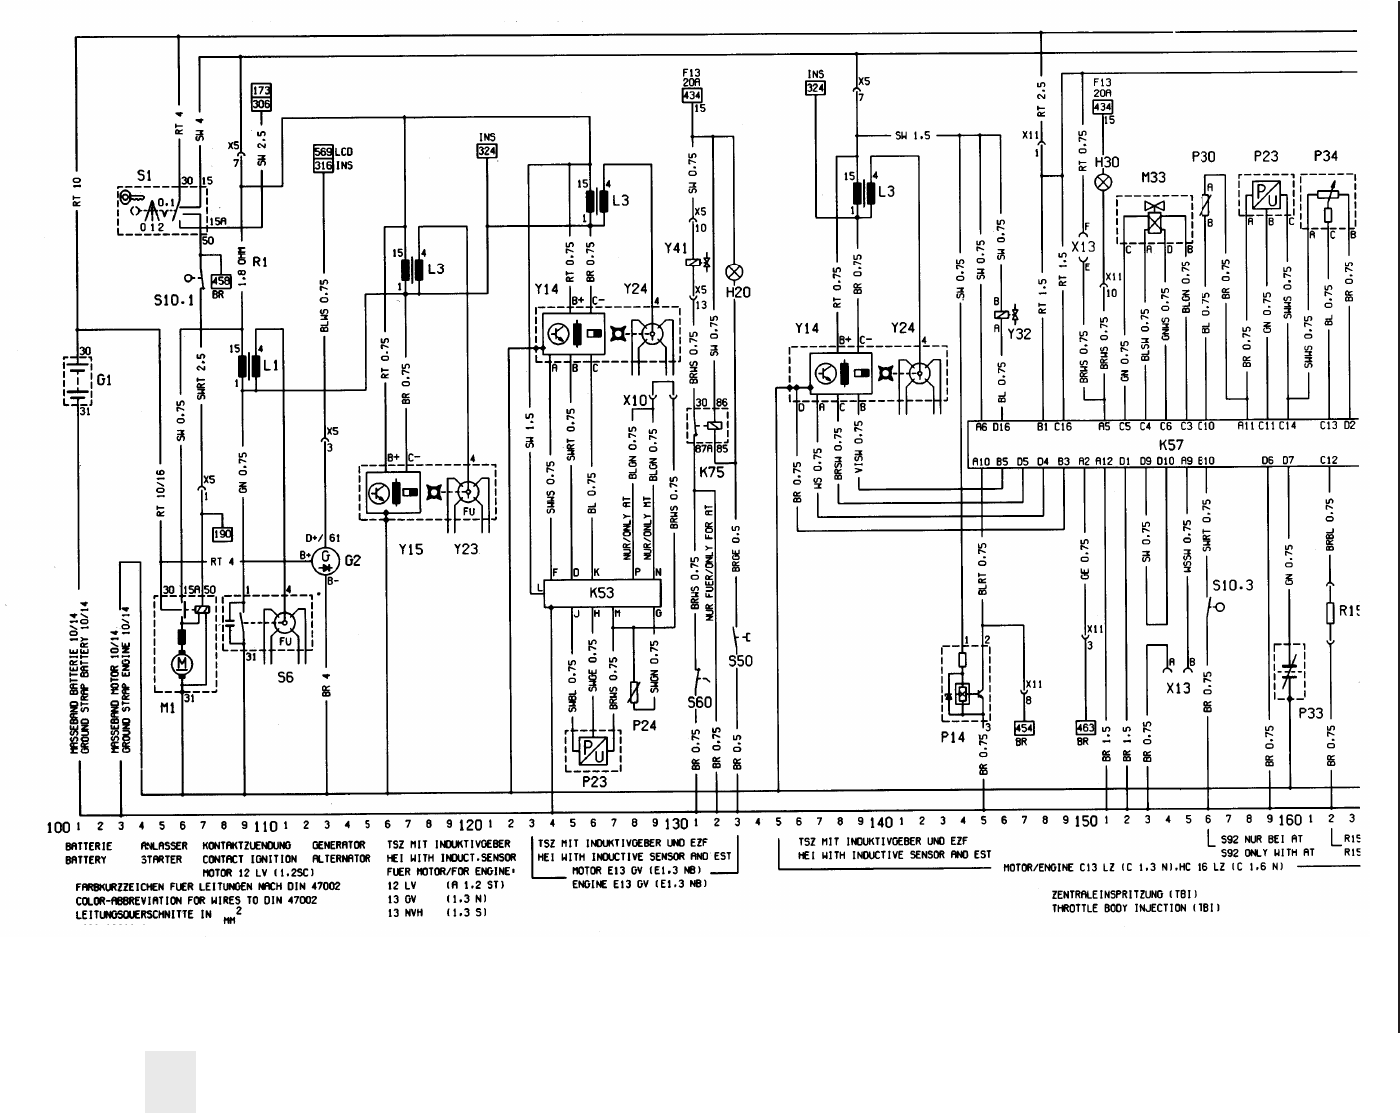 [DIAGRAM_5UK]  Opel Astra Wiring Diagram Download Diagram Base Website Diagram Download -  VENNDIAGRAMCOLOR.ORANGEANIMATION.IT | Opel Meriva 2004 Wiring Diagram |  | Diagram Base Website Full Edition - orangeanimation.it